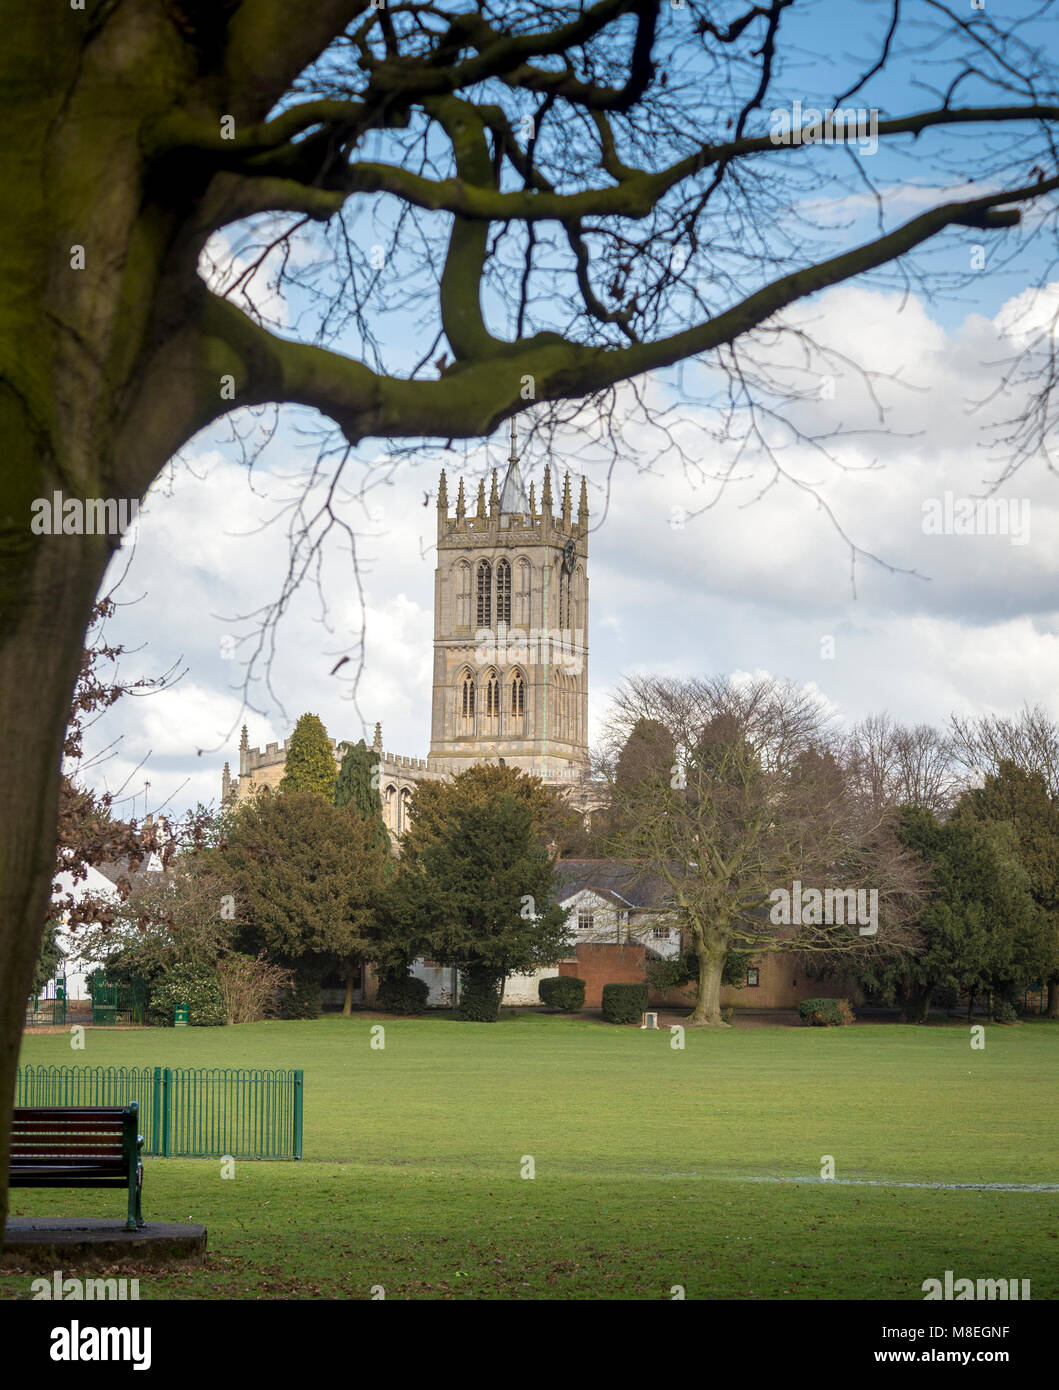 Melton Mowbray 16th March 2018: Blue skys and clouds mild day with warm spells of sunshine people and wildlife enjoy - Stock Image